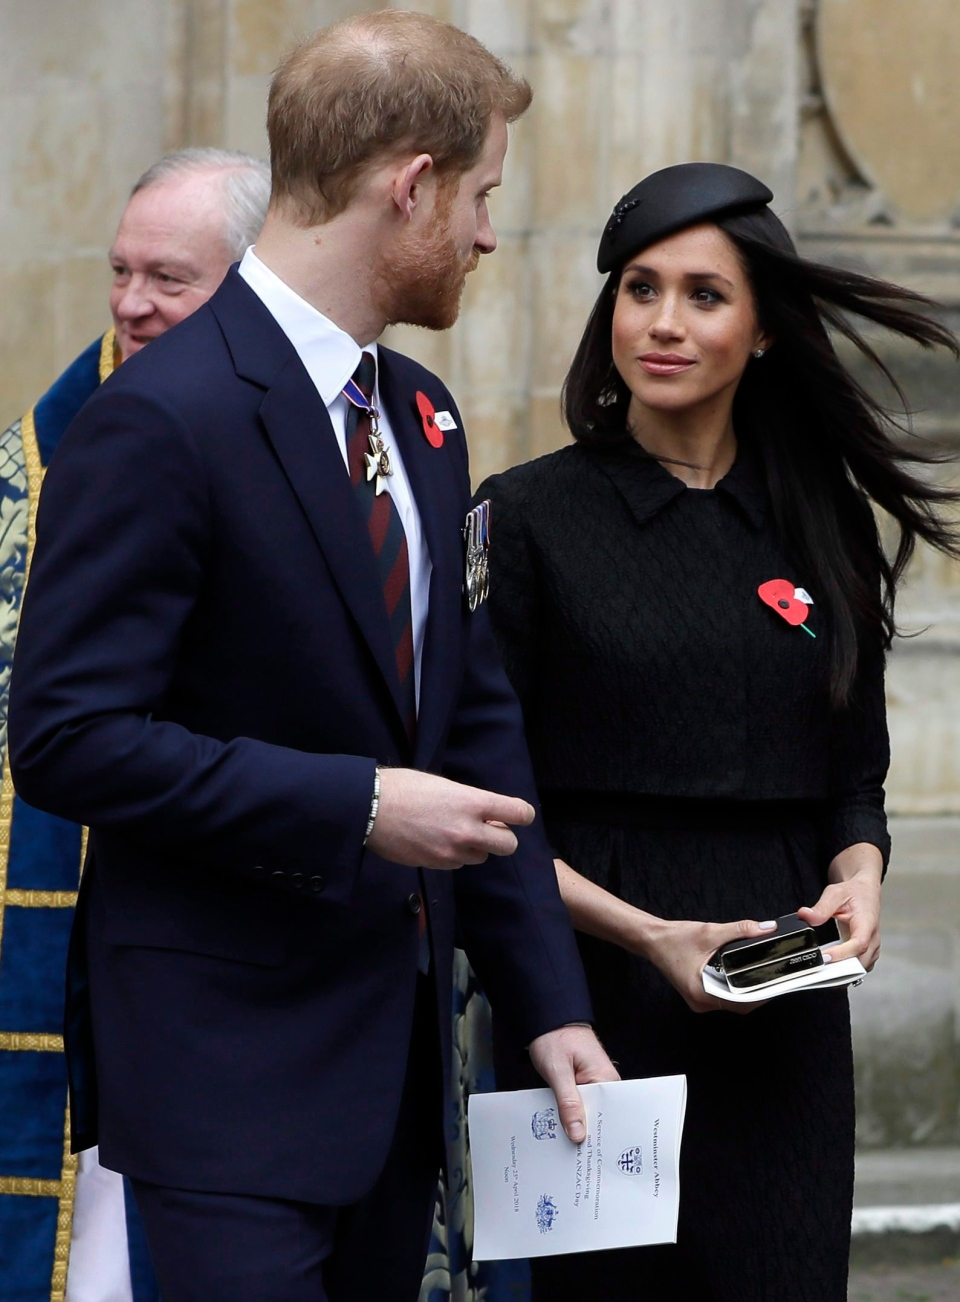 Britain's Prince Harry and Meghan Markle leave after attending a Service of Thanksgiving and Commemoration on ANZAC Day at Westminster Abbey in London, Wednesday, April 25, 2018. (AP Photo/Kirsty Wigglesworth)